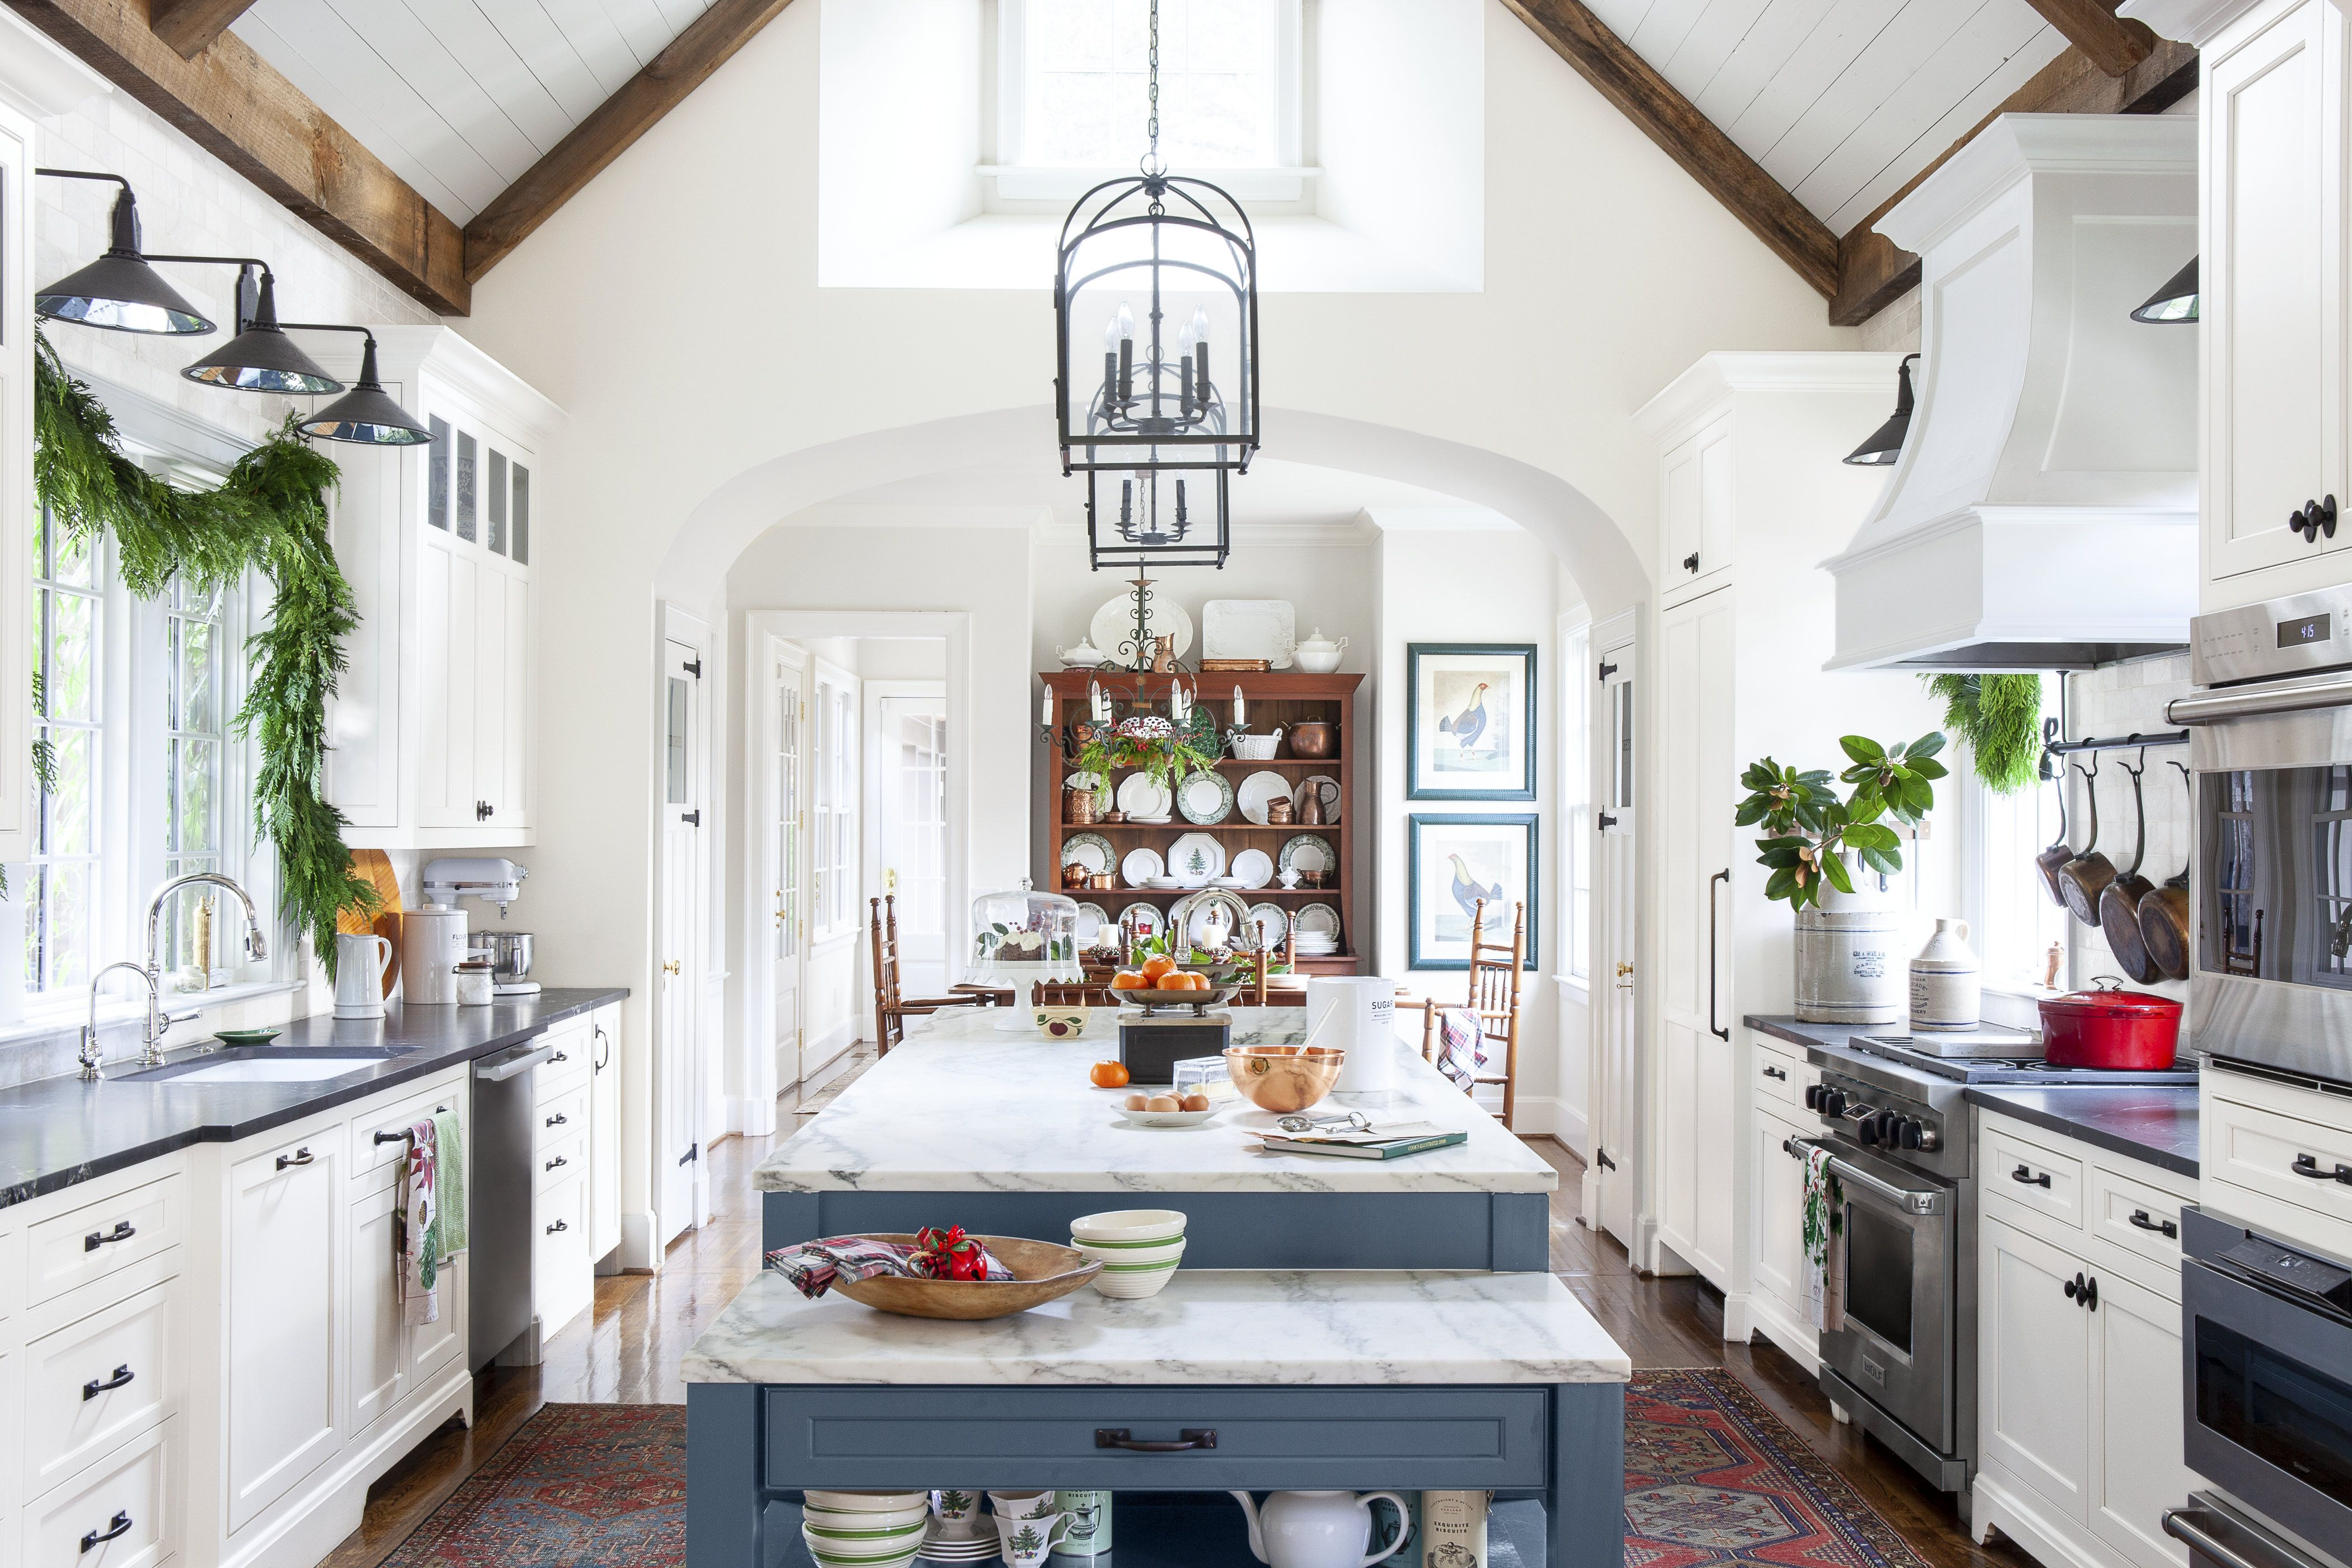 9 Kitchen Christmas Decorating Ideas - How to Decorate Your